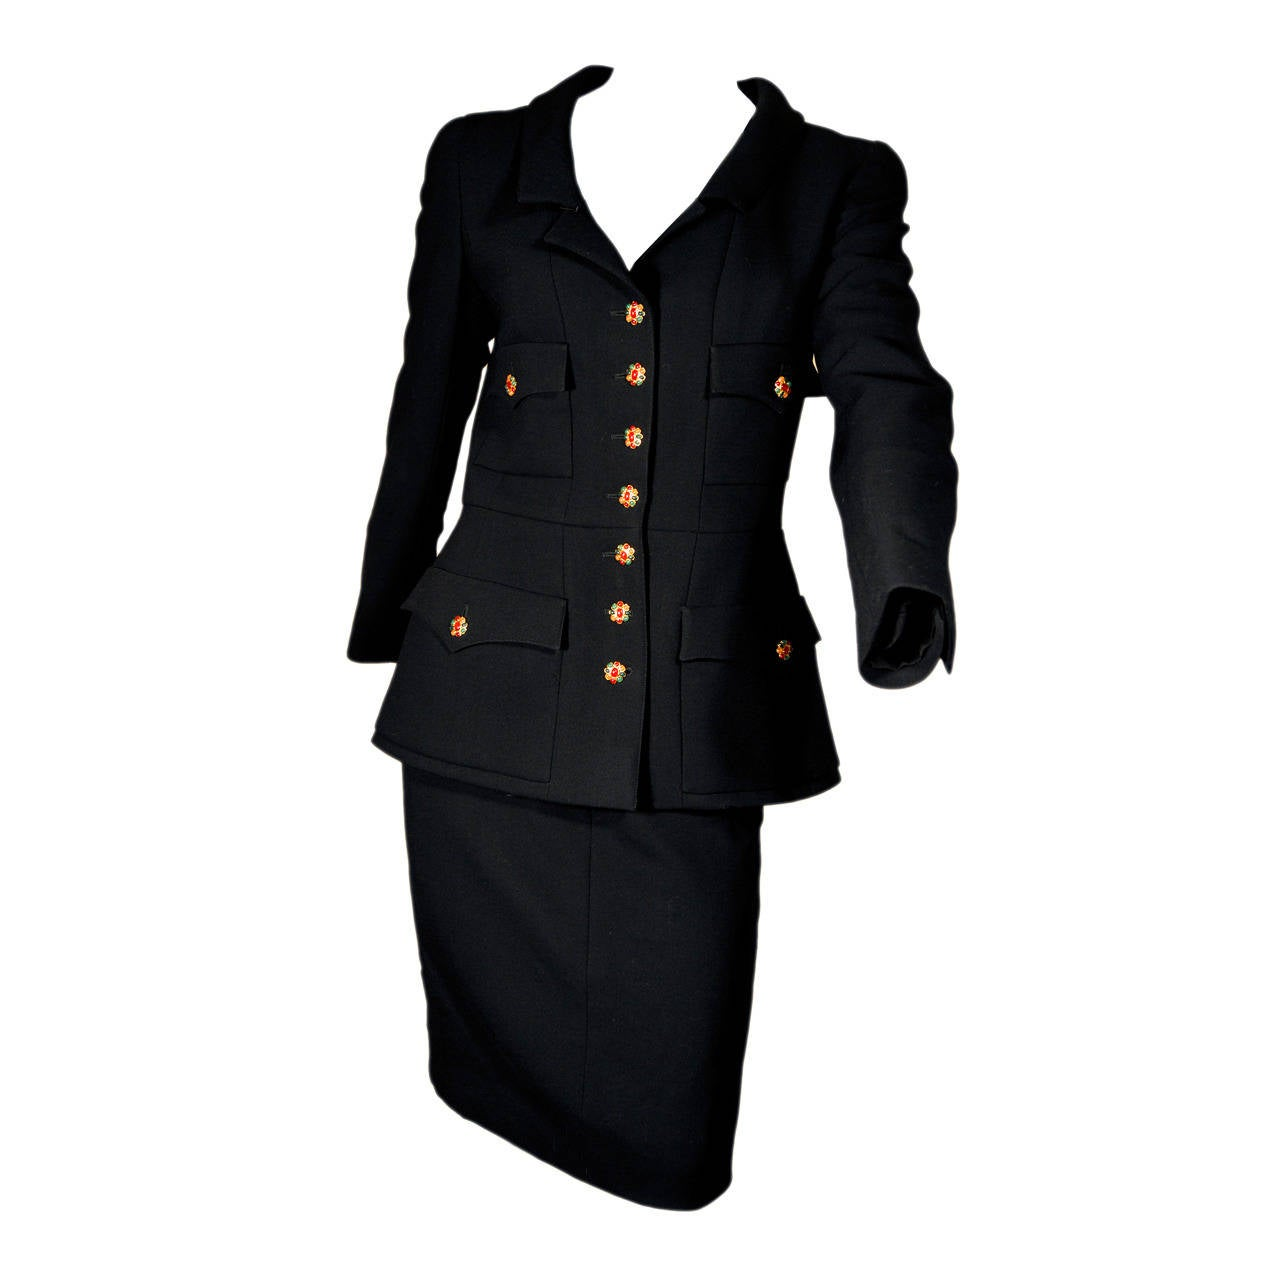 Chanel 1996 Black Wool Skirt Suit with Gripoix Buttons